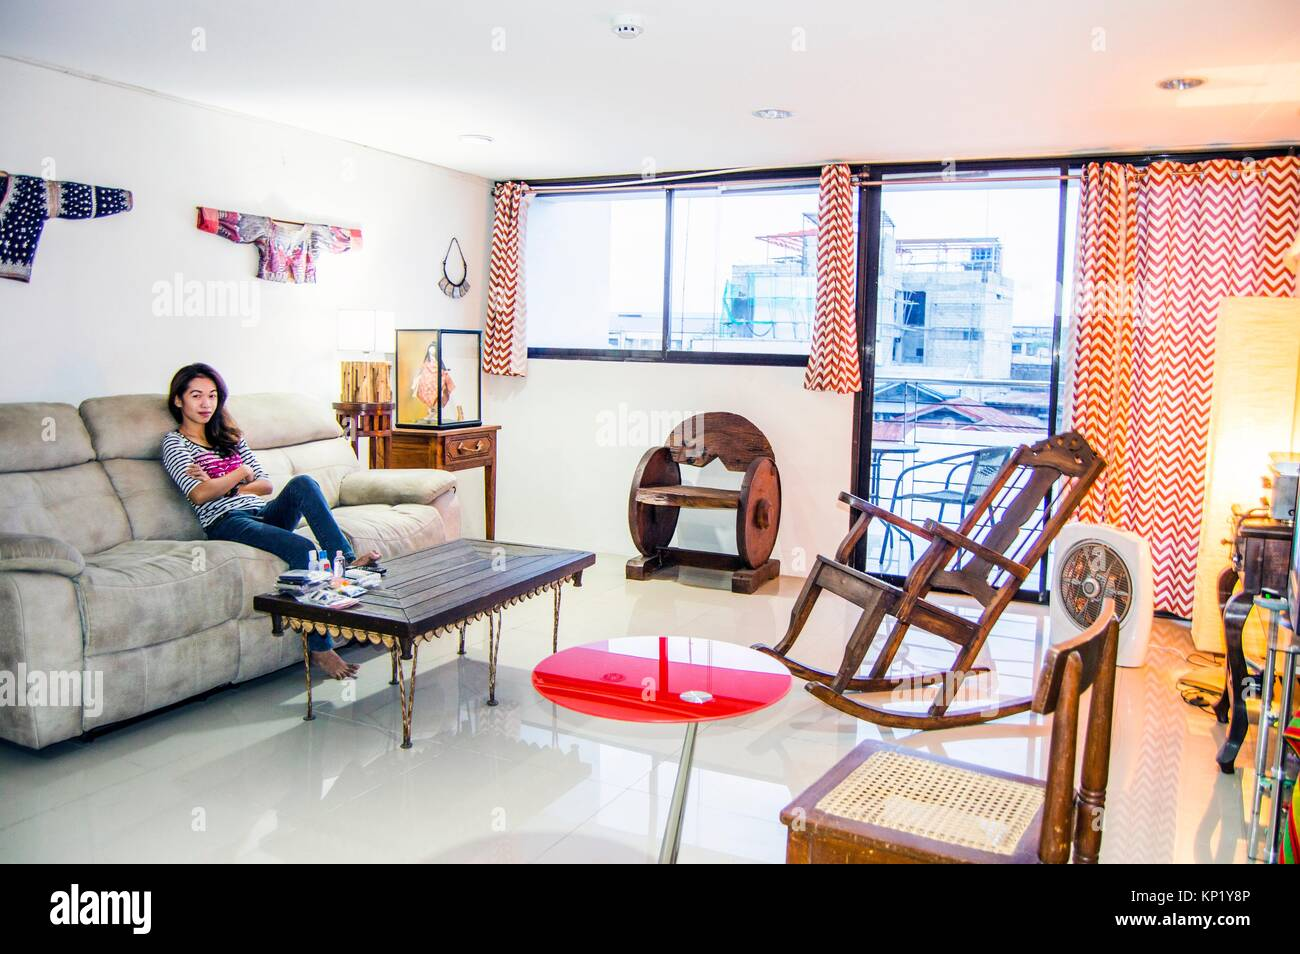 Apartment Living Room Interior With Modern And Antique Furniture In  Downtown Cebu City, Philippines